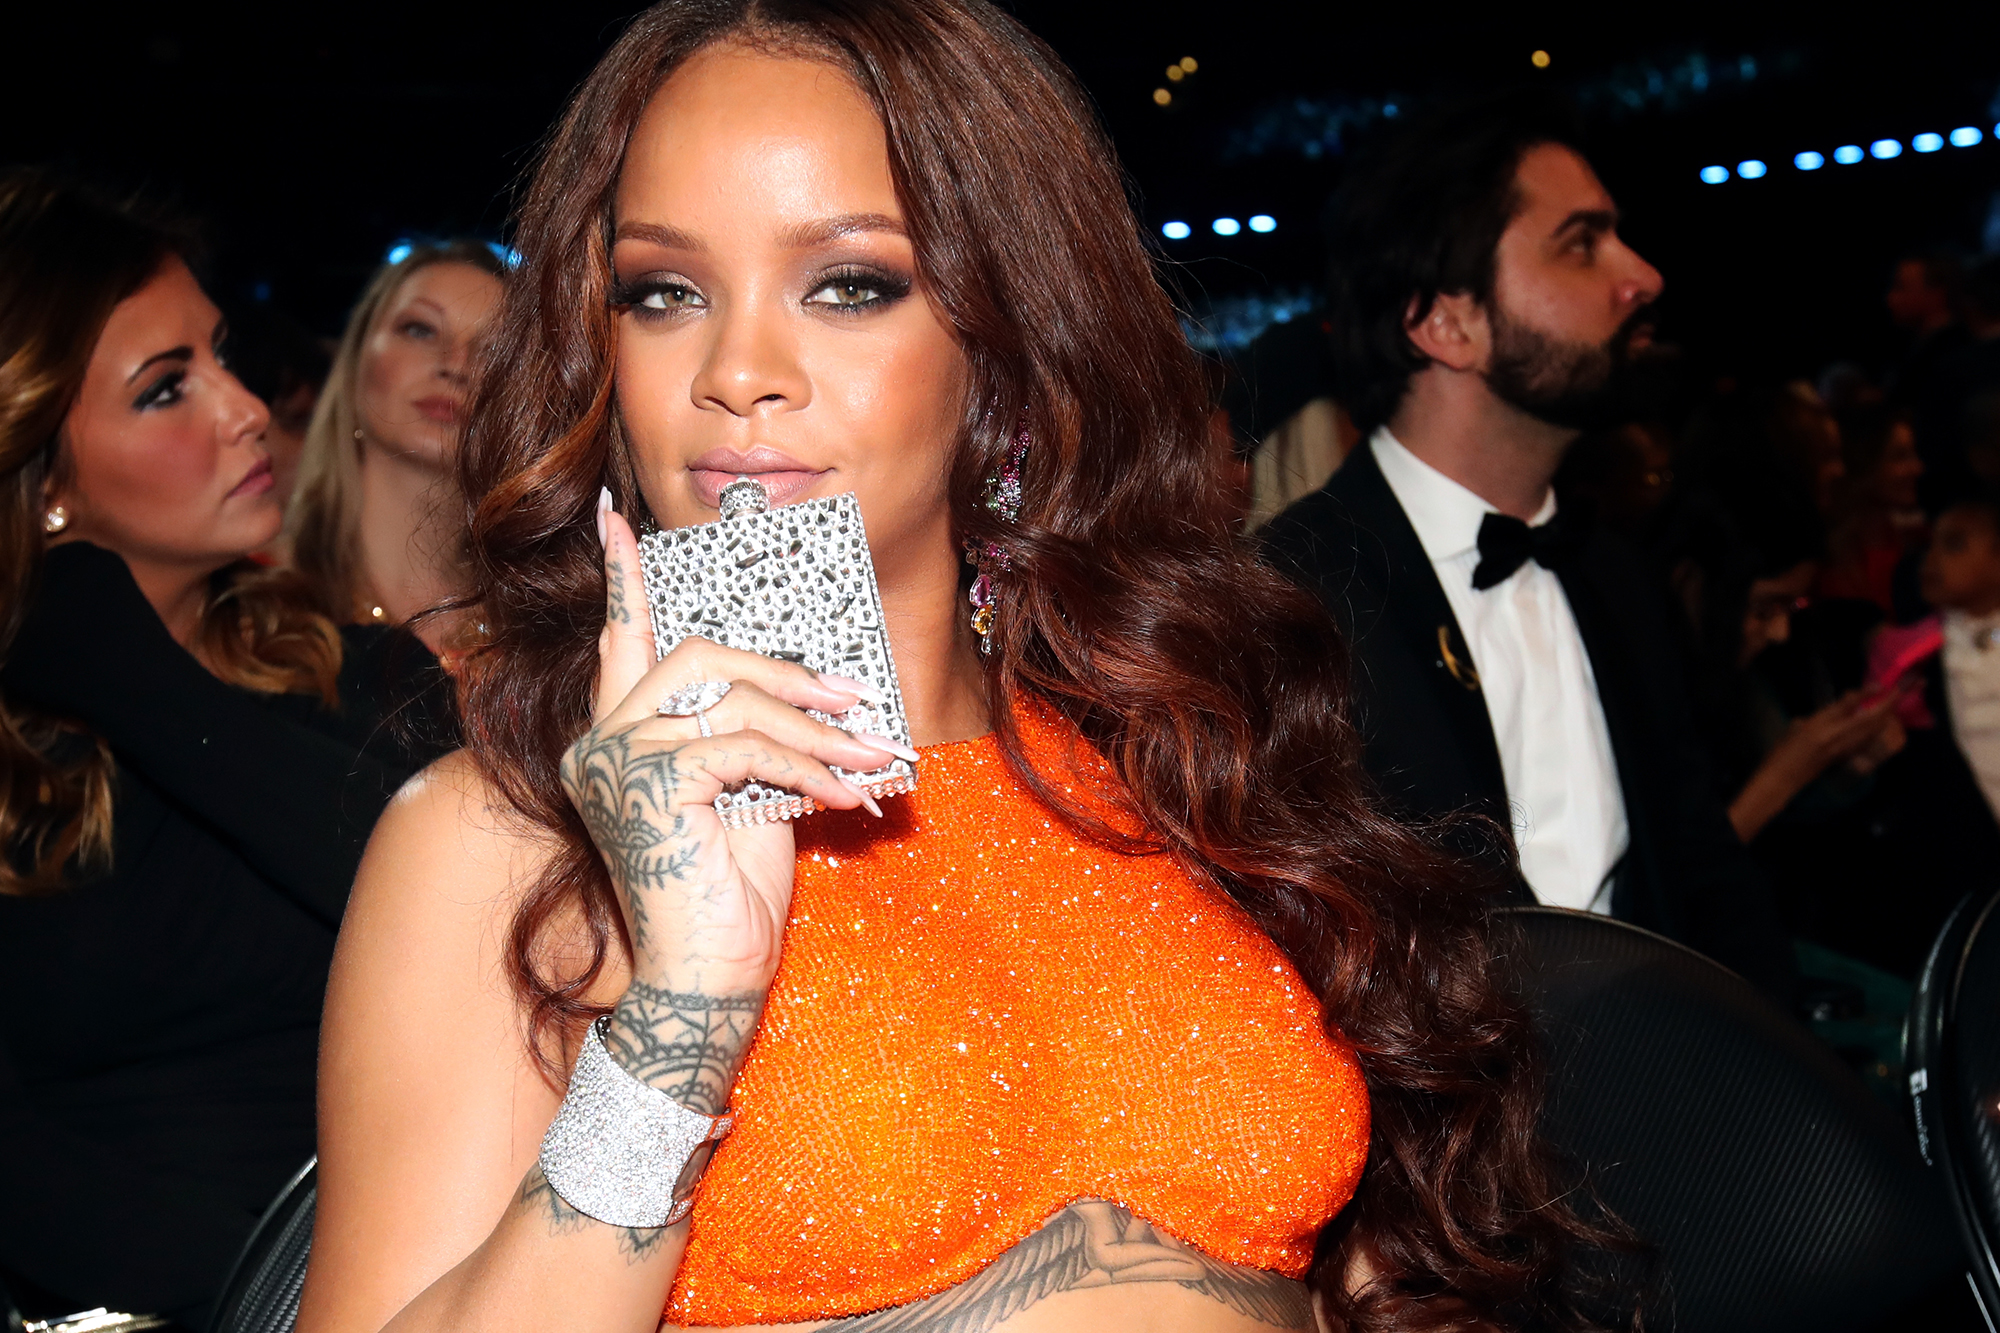 Rihanna during the 59th GRAMMY Awards at STAPLES Center, on Feb. 12, 2017 in Los Angeles.